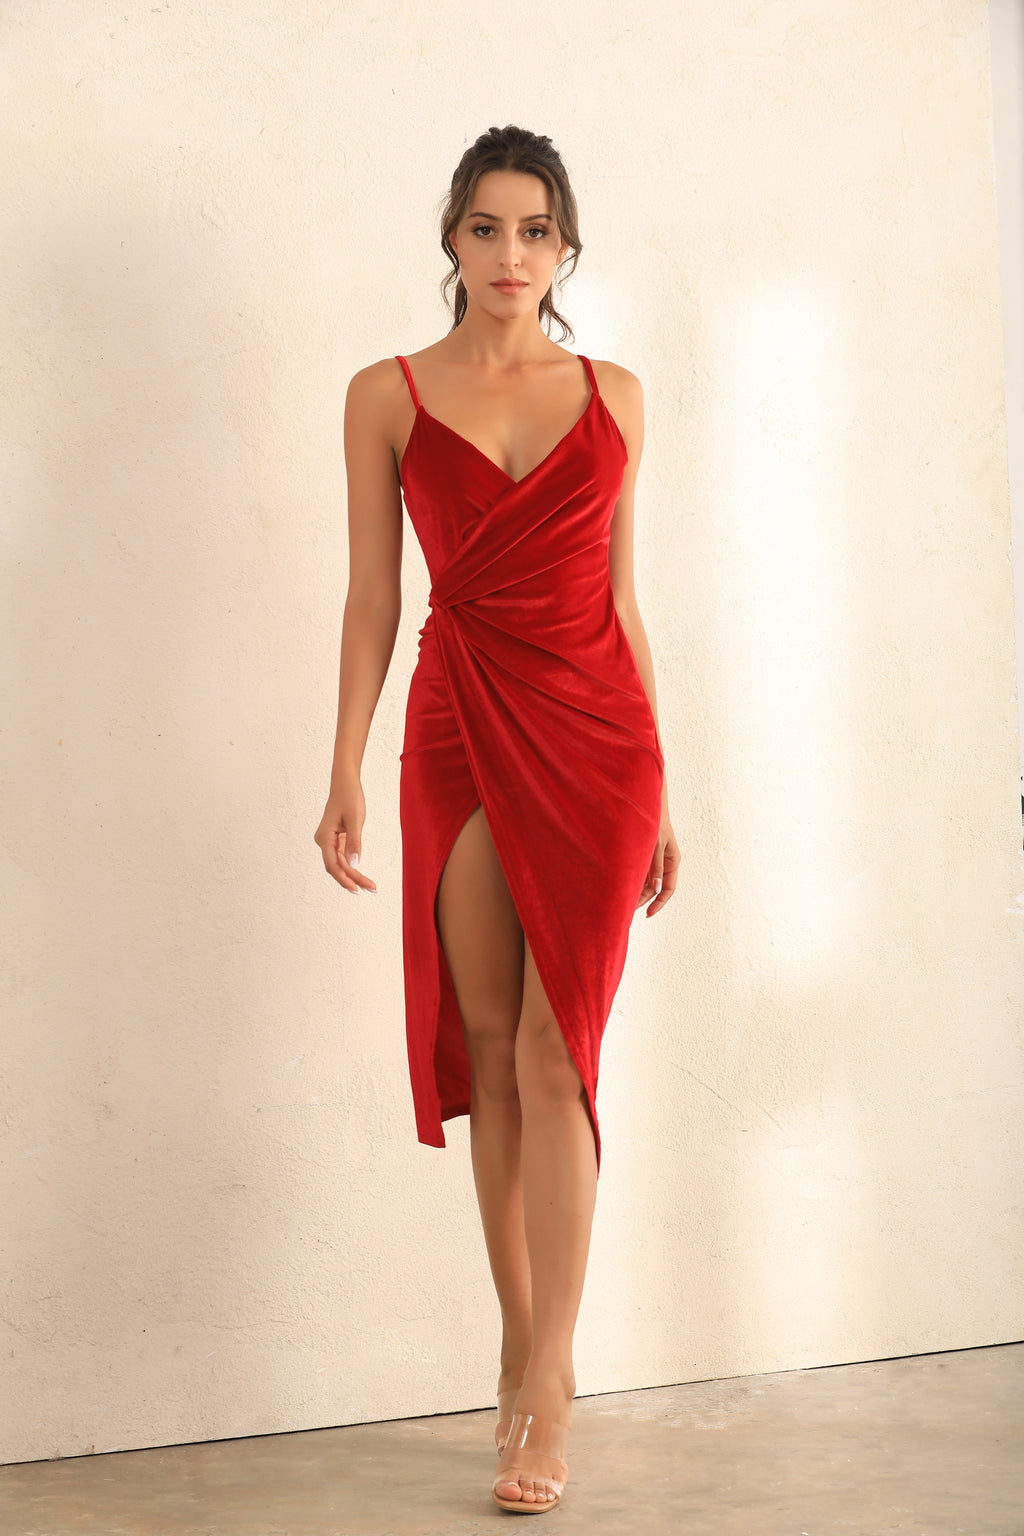 Plunge Velvet Wrap Cami Dress In Red - Miss Floral